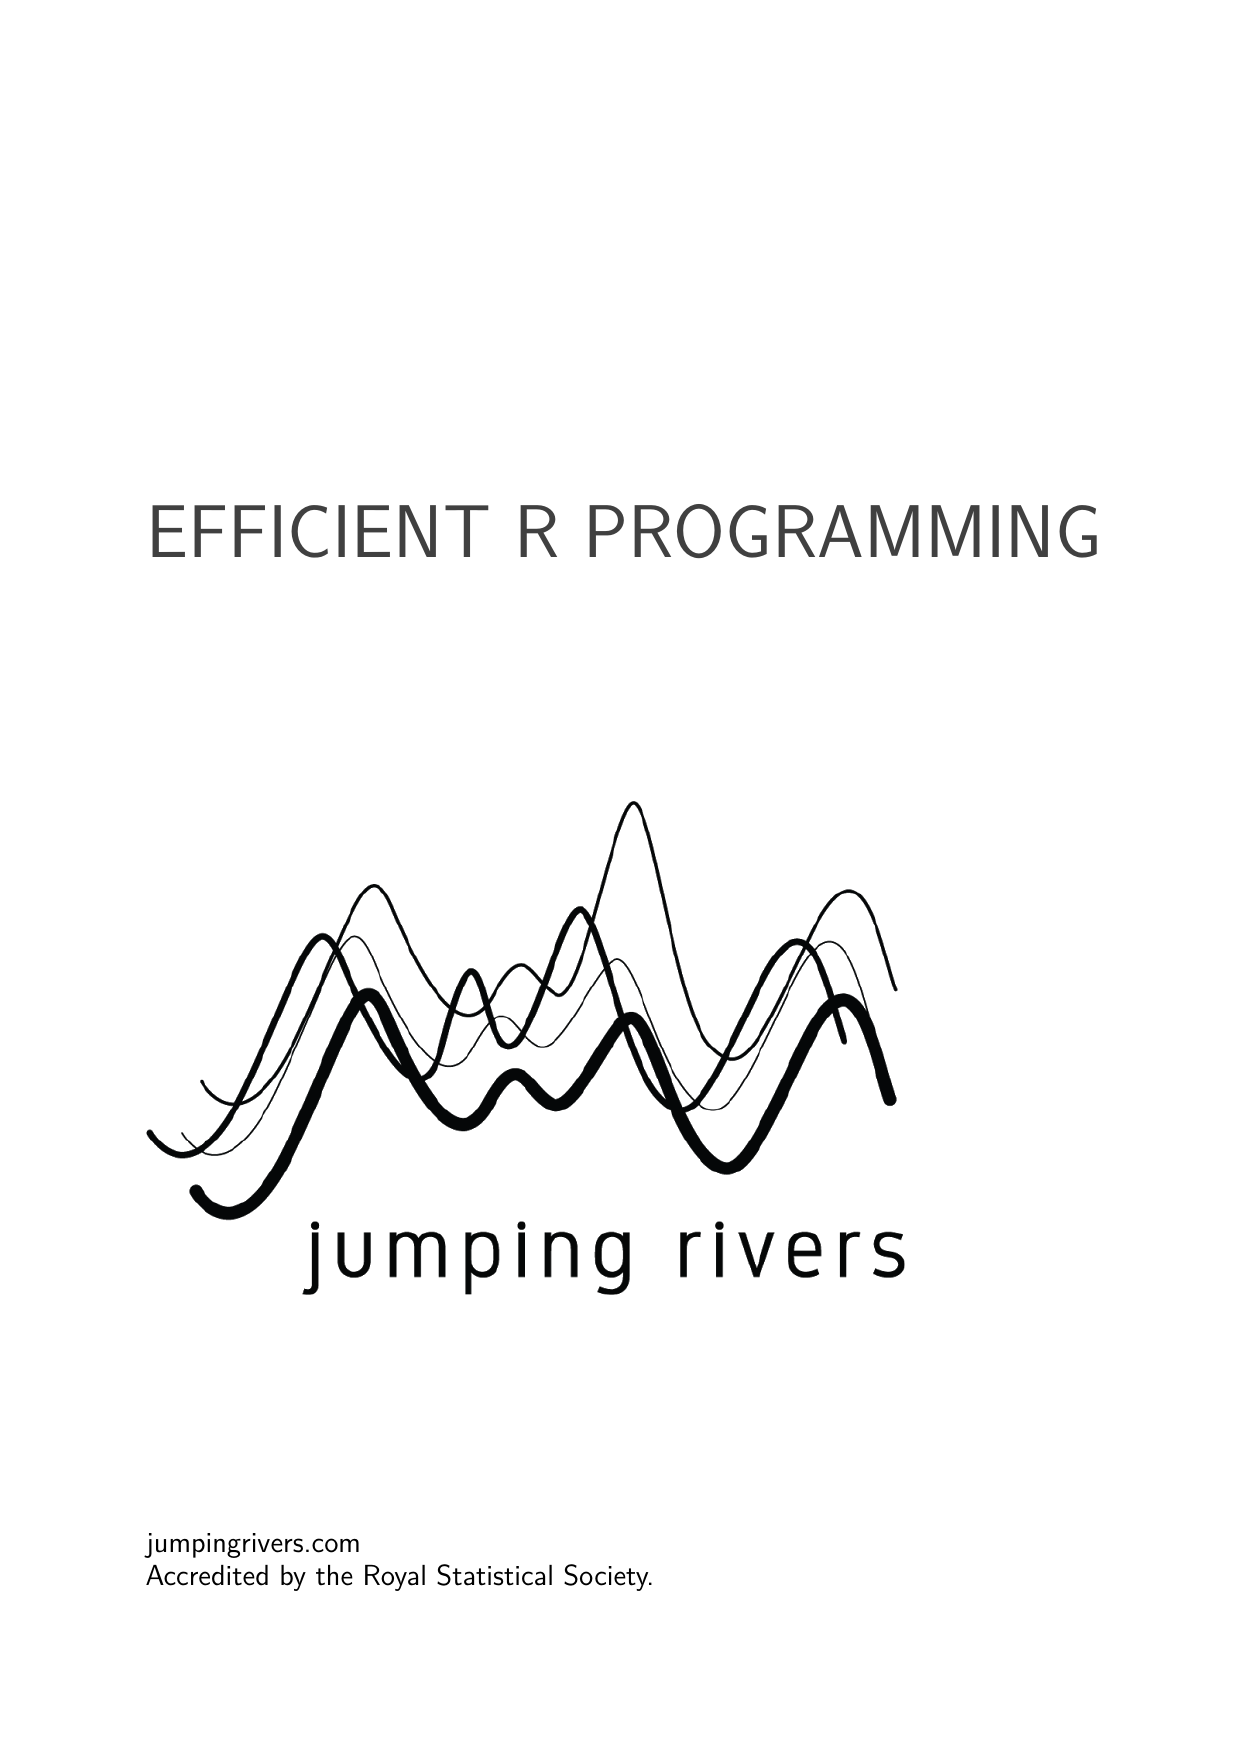 Example course material for 'Efficient R Programming